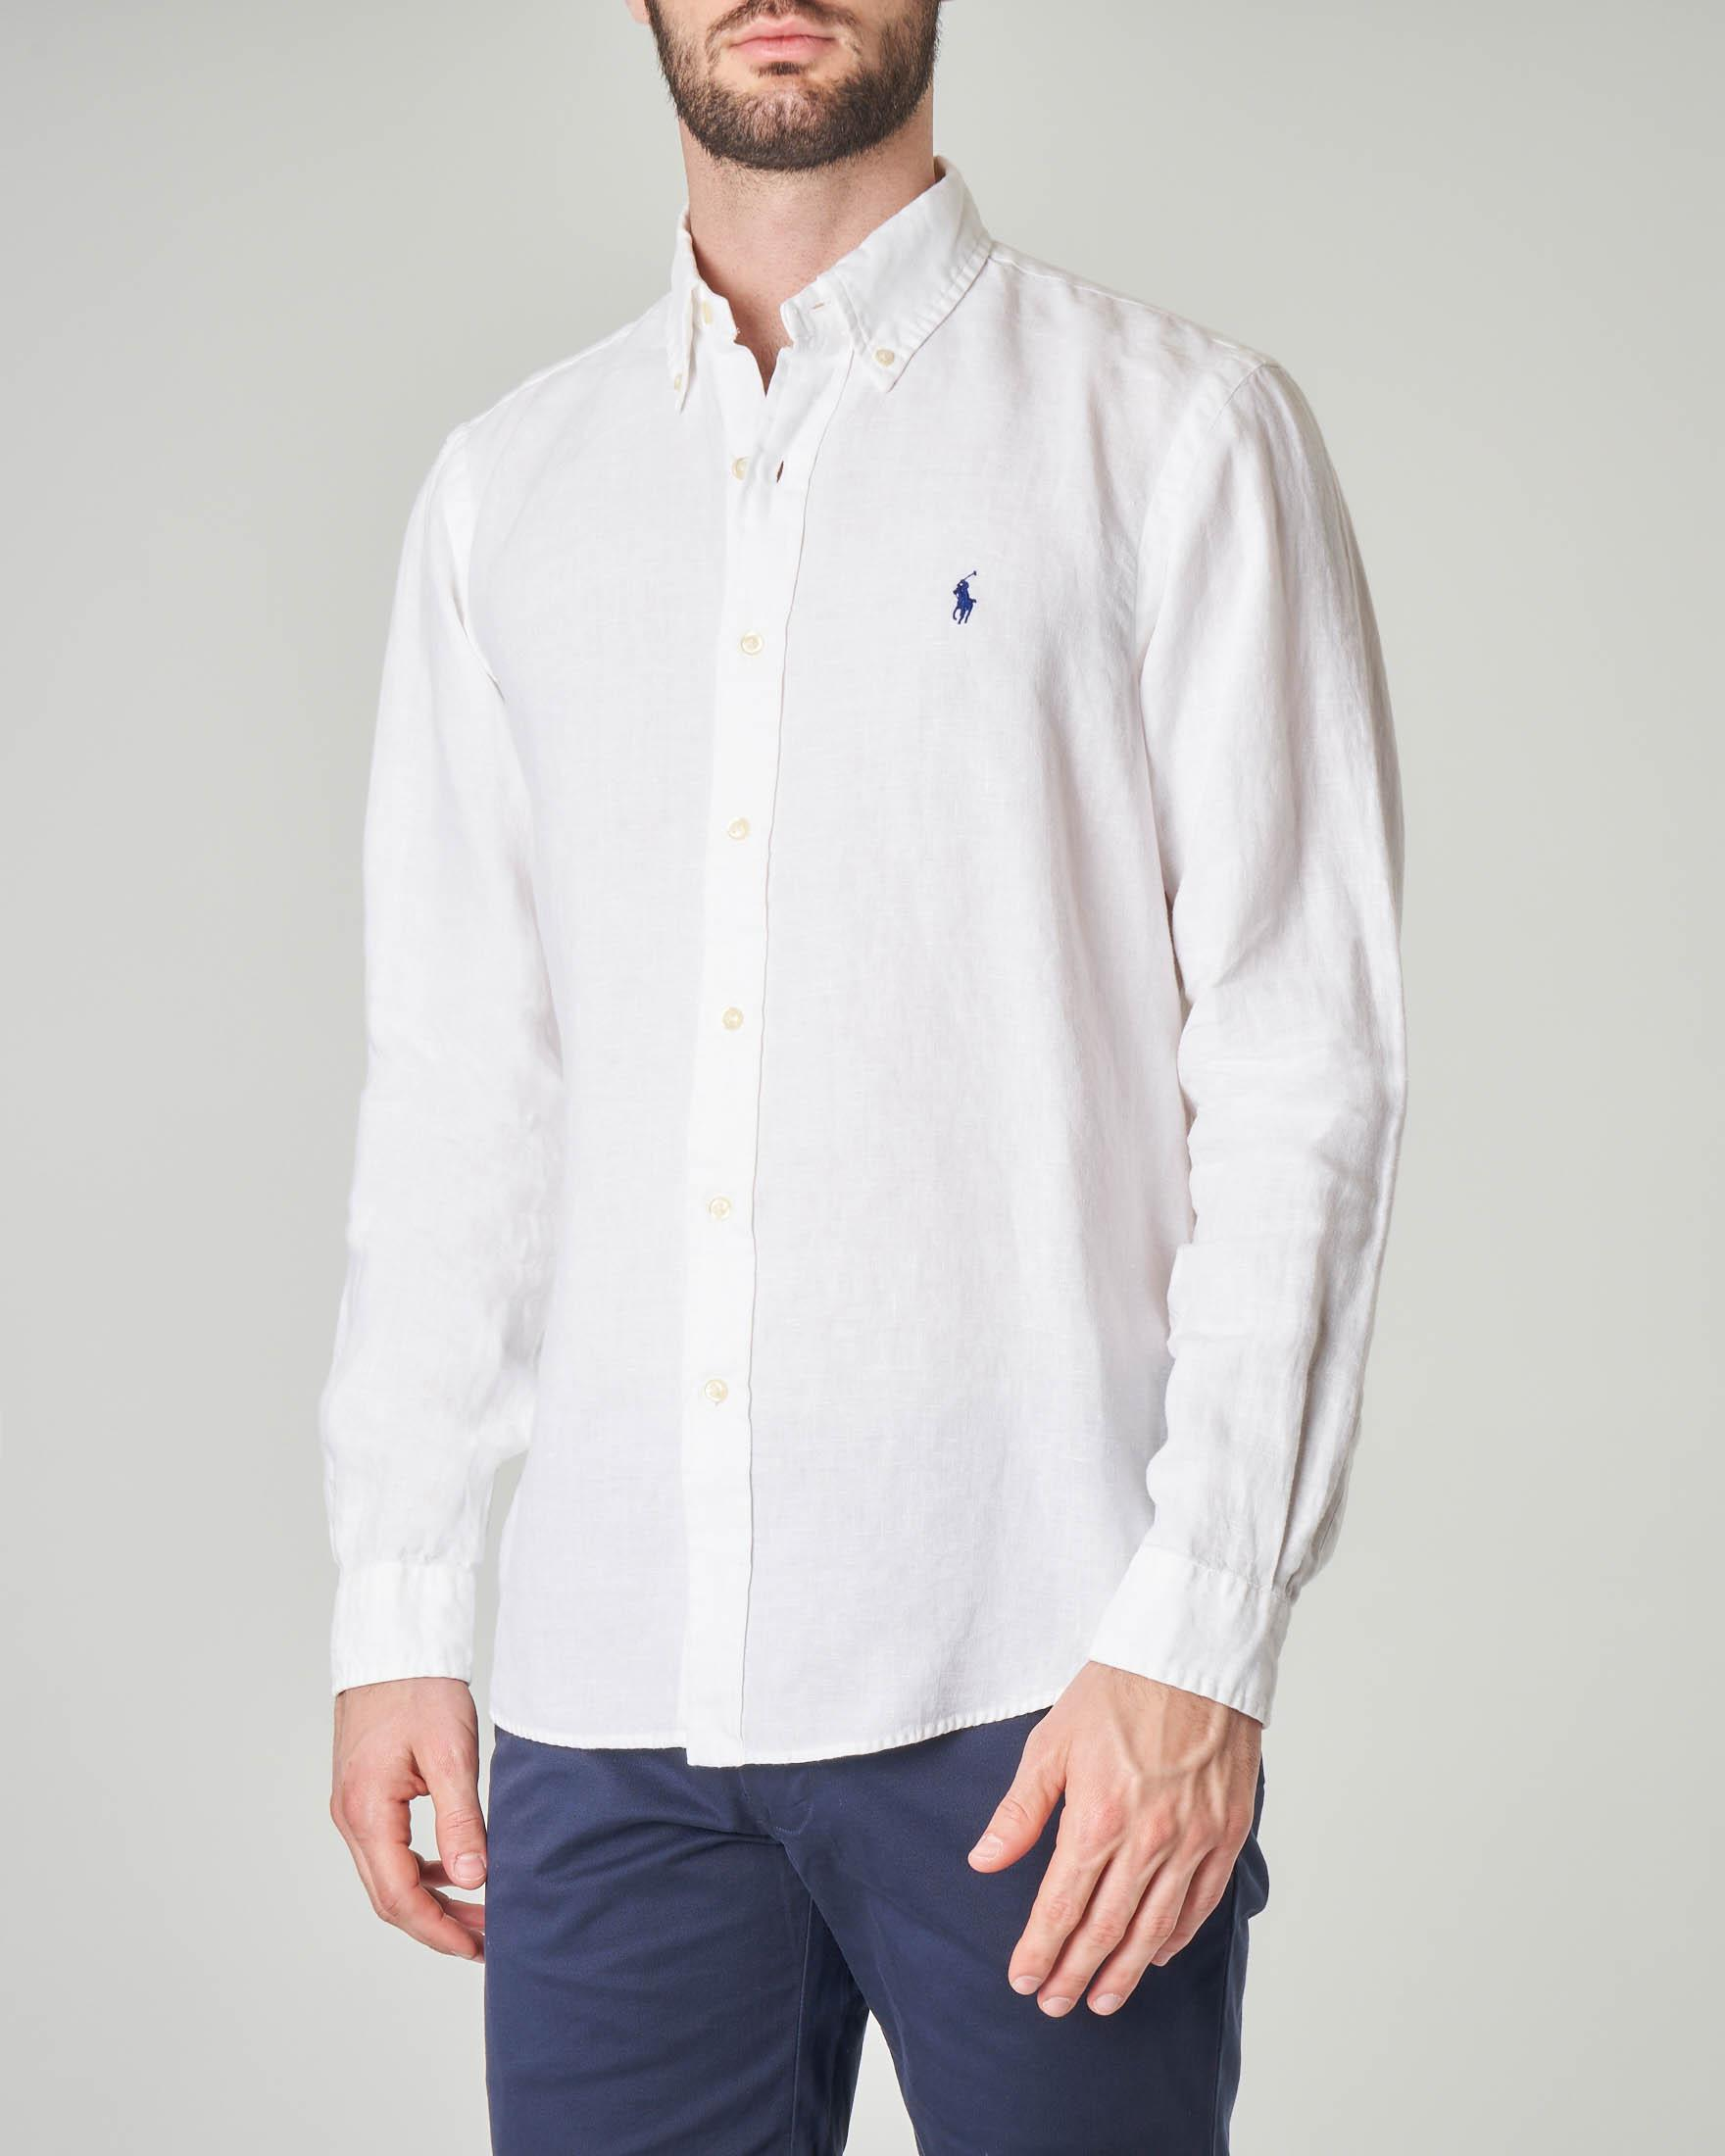 Camicia bianca button down in lino